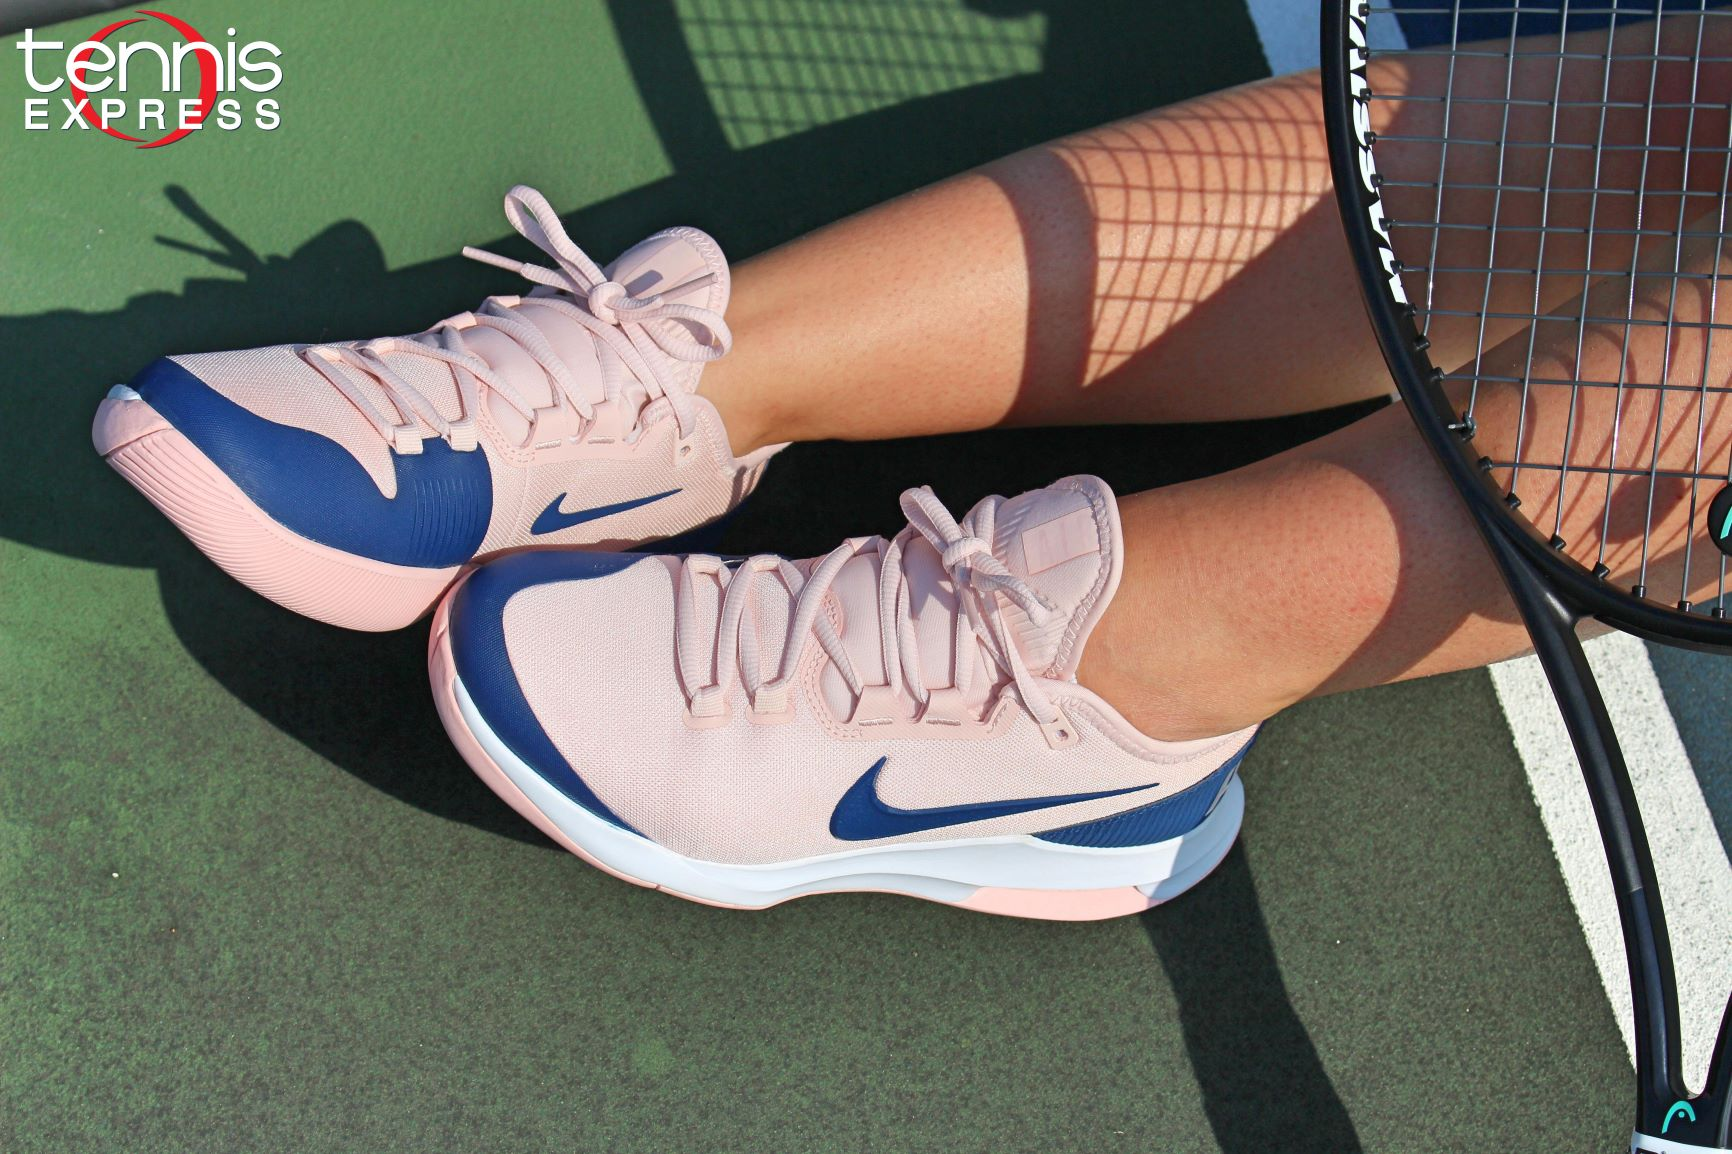 Tennis Shoes 101: Everything You Need